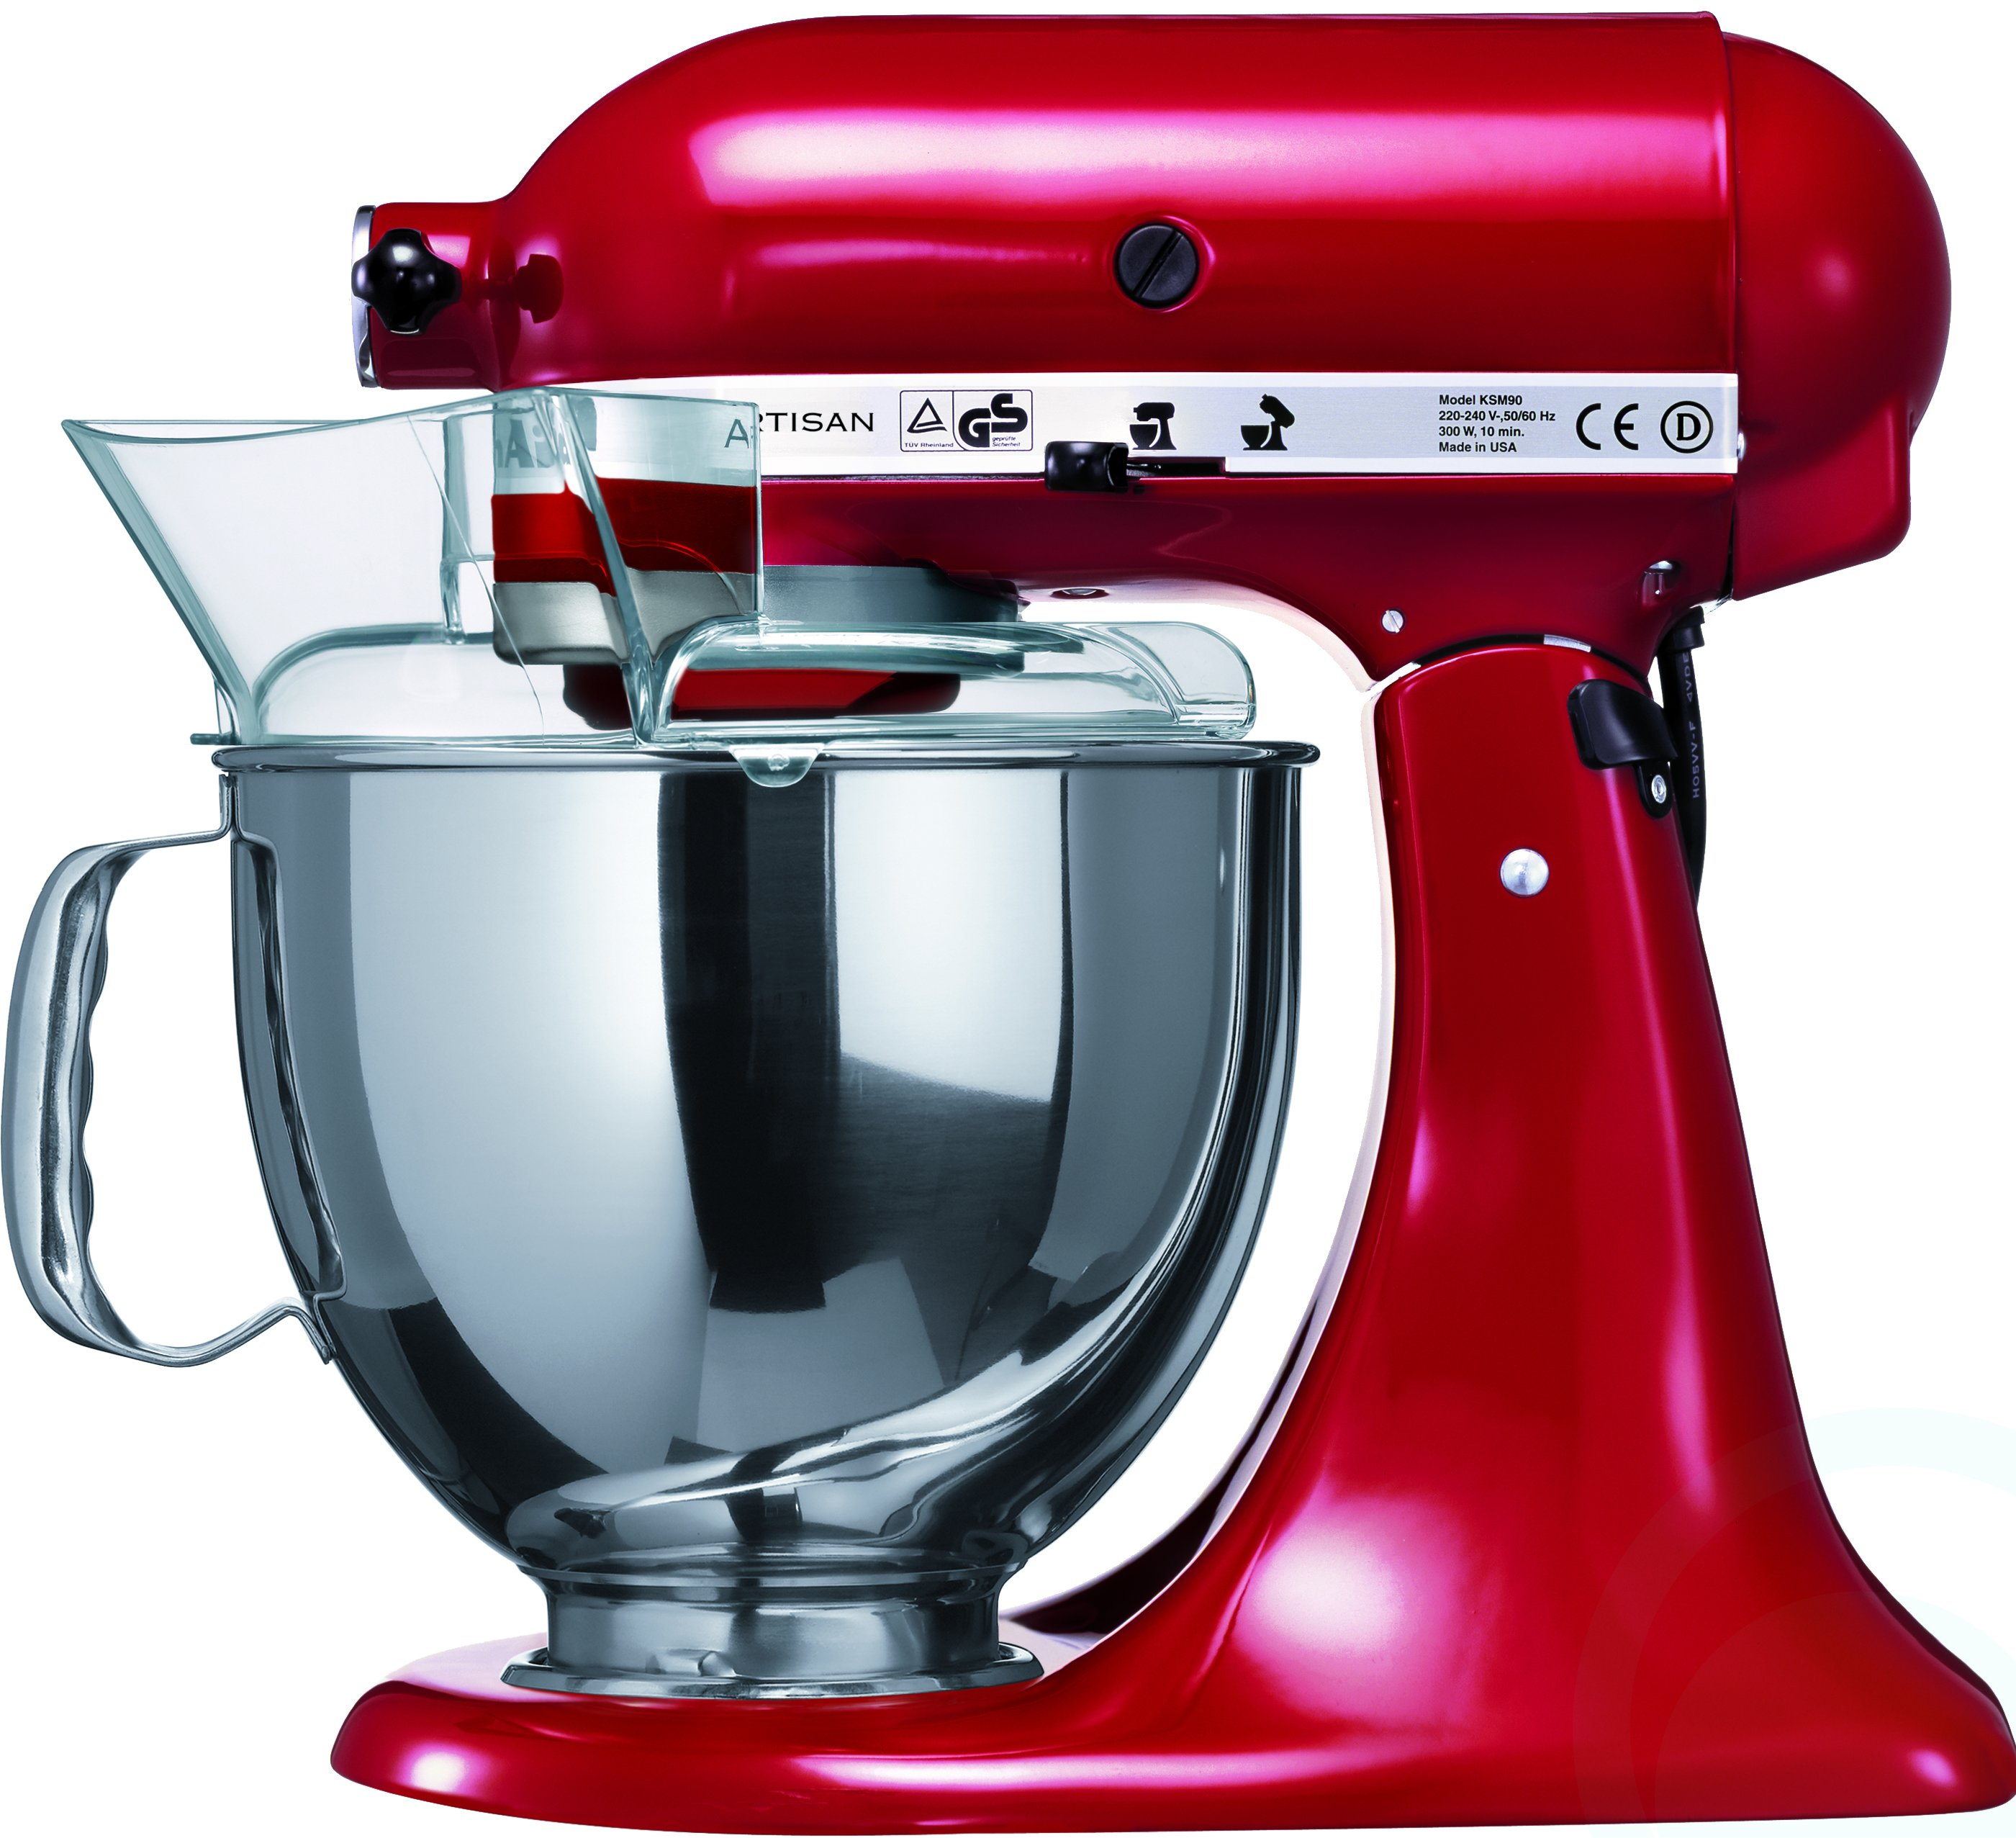 new kitchenaid 91010 artisan ksm150 stand mixer ebay. Black Bedroom Furniture Sets. Home Design Ideas